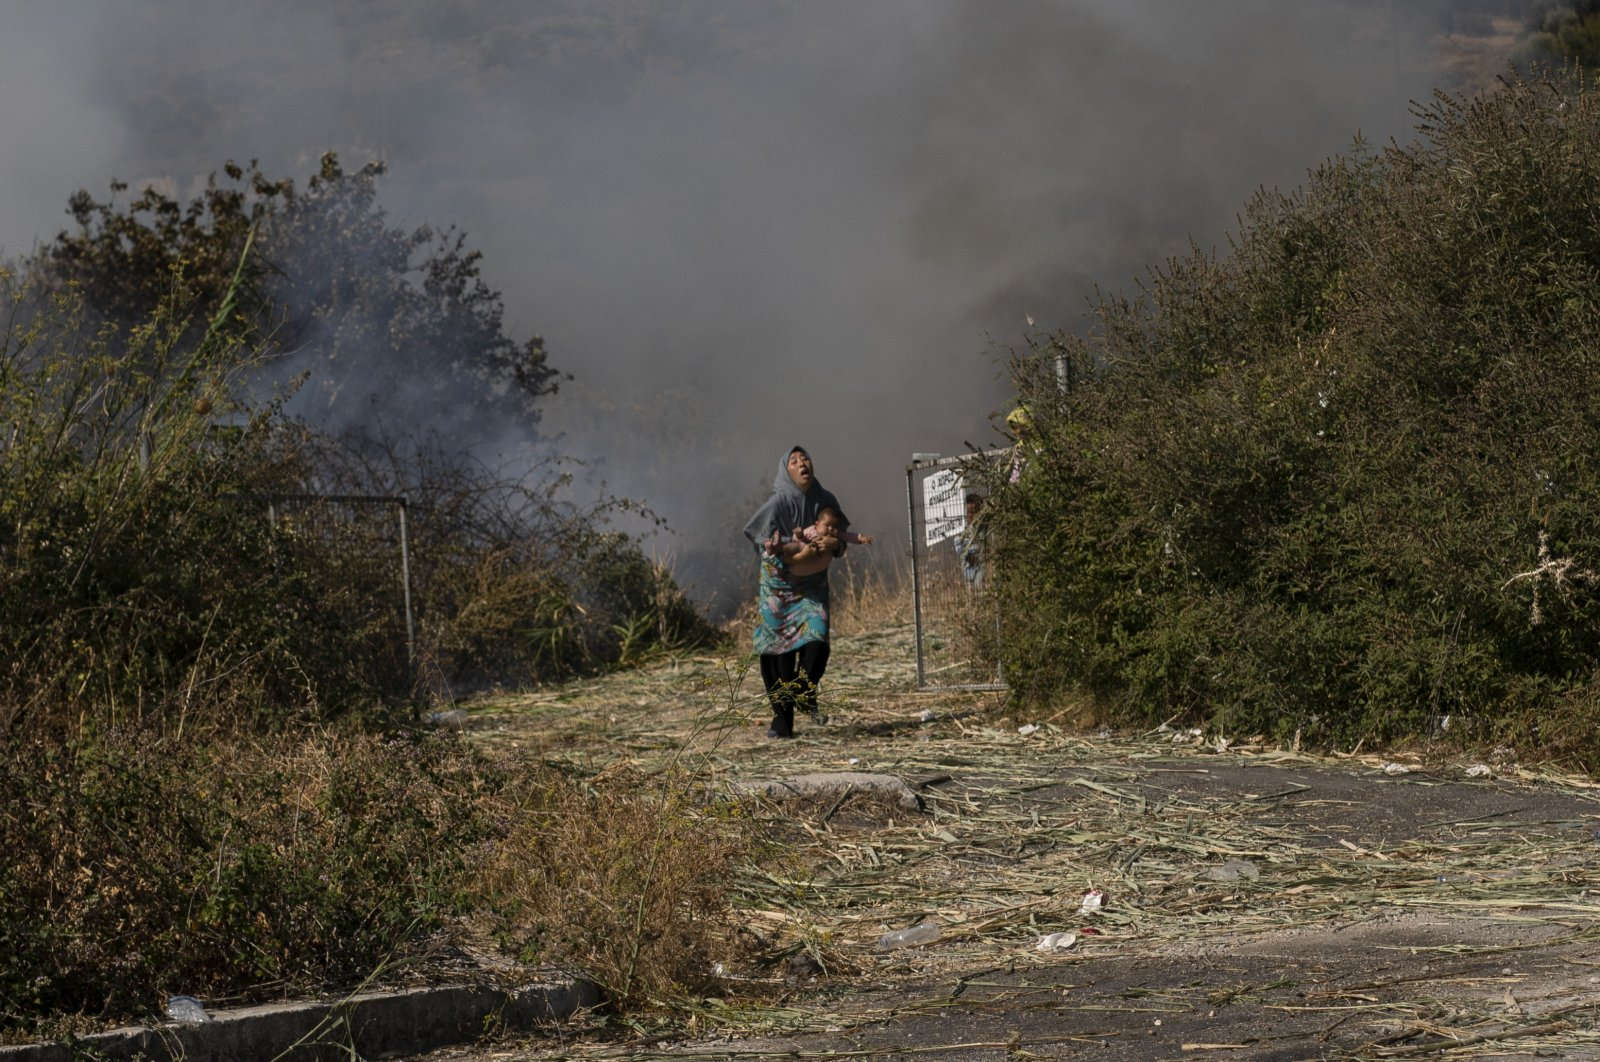 An Afghan woman from the destroyed Moria camp holds her baby as she runs to avoid a small fire in a field near where refugees and migrants are sheltered, in Lesbos island, Greece, Sept. 12, 2020. (AP Photo)